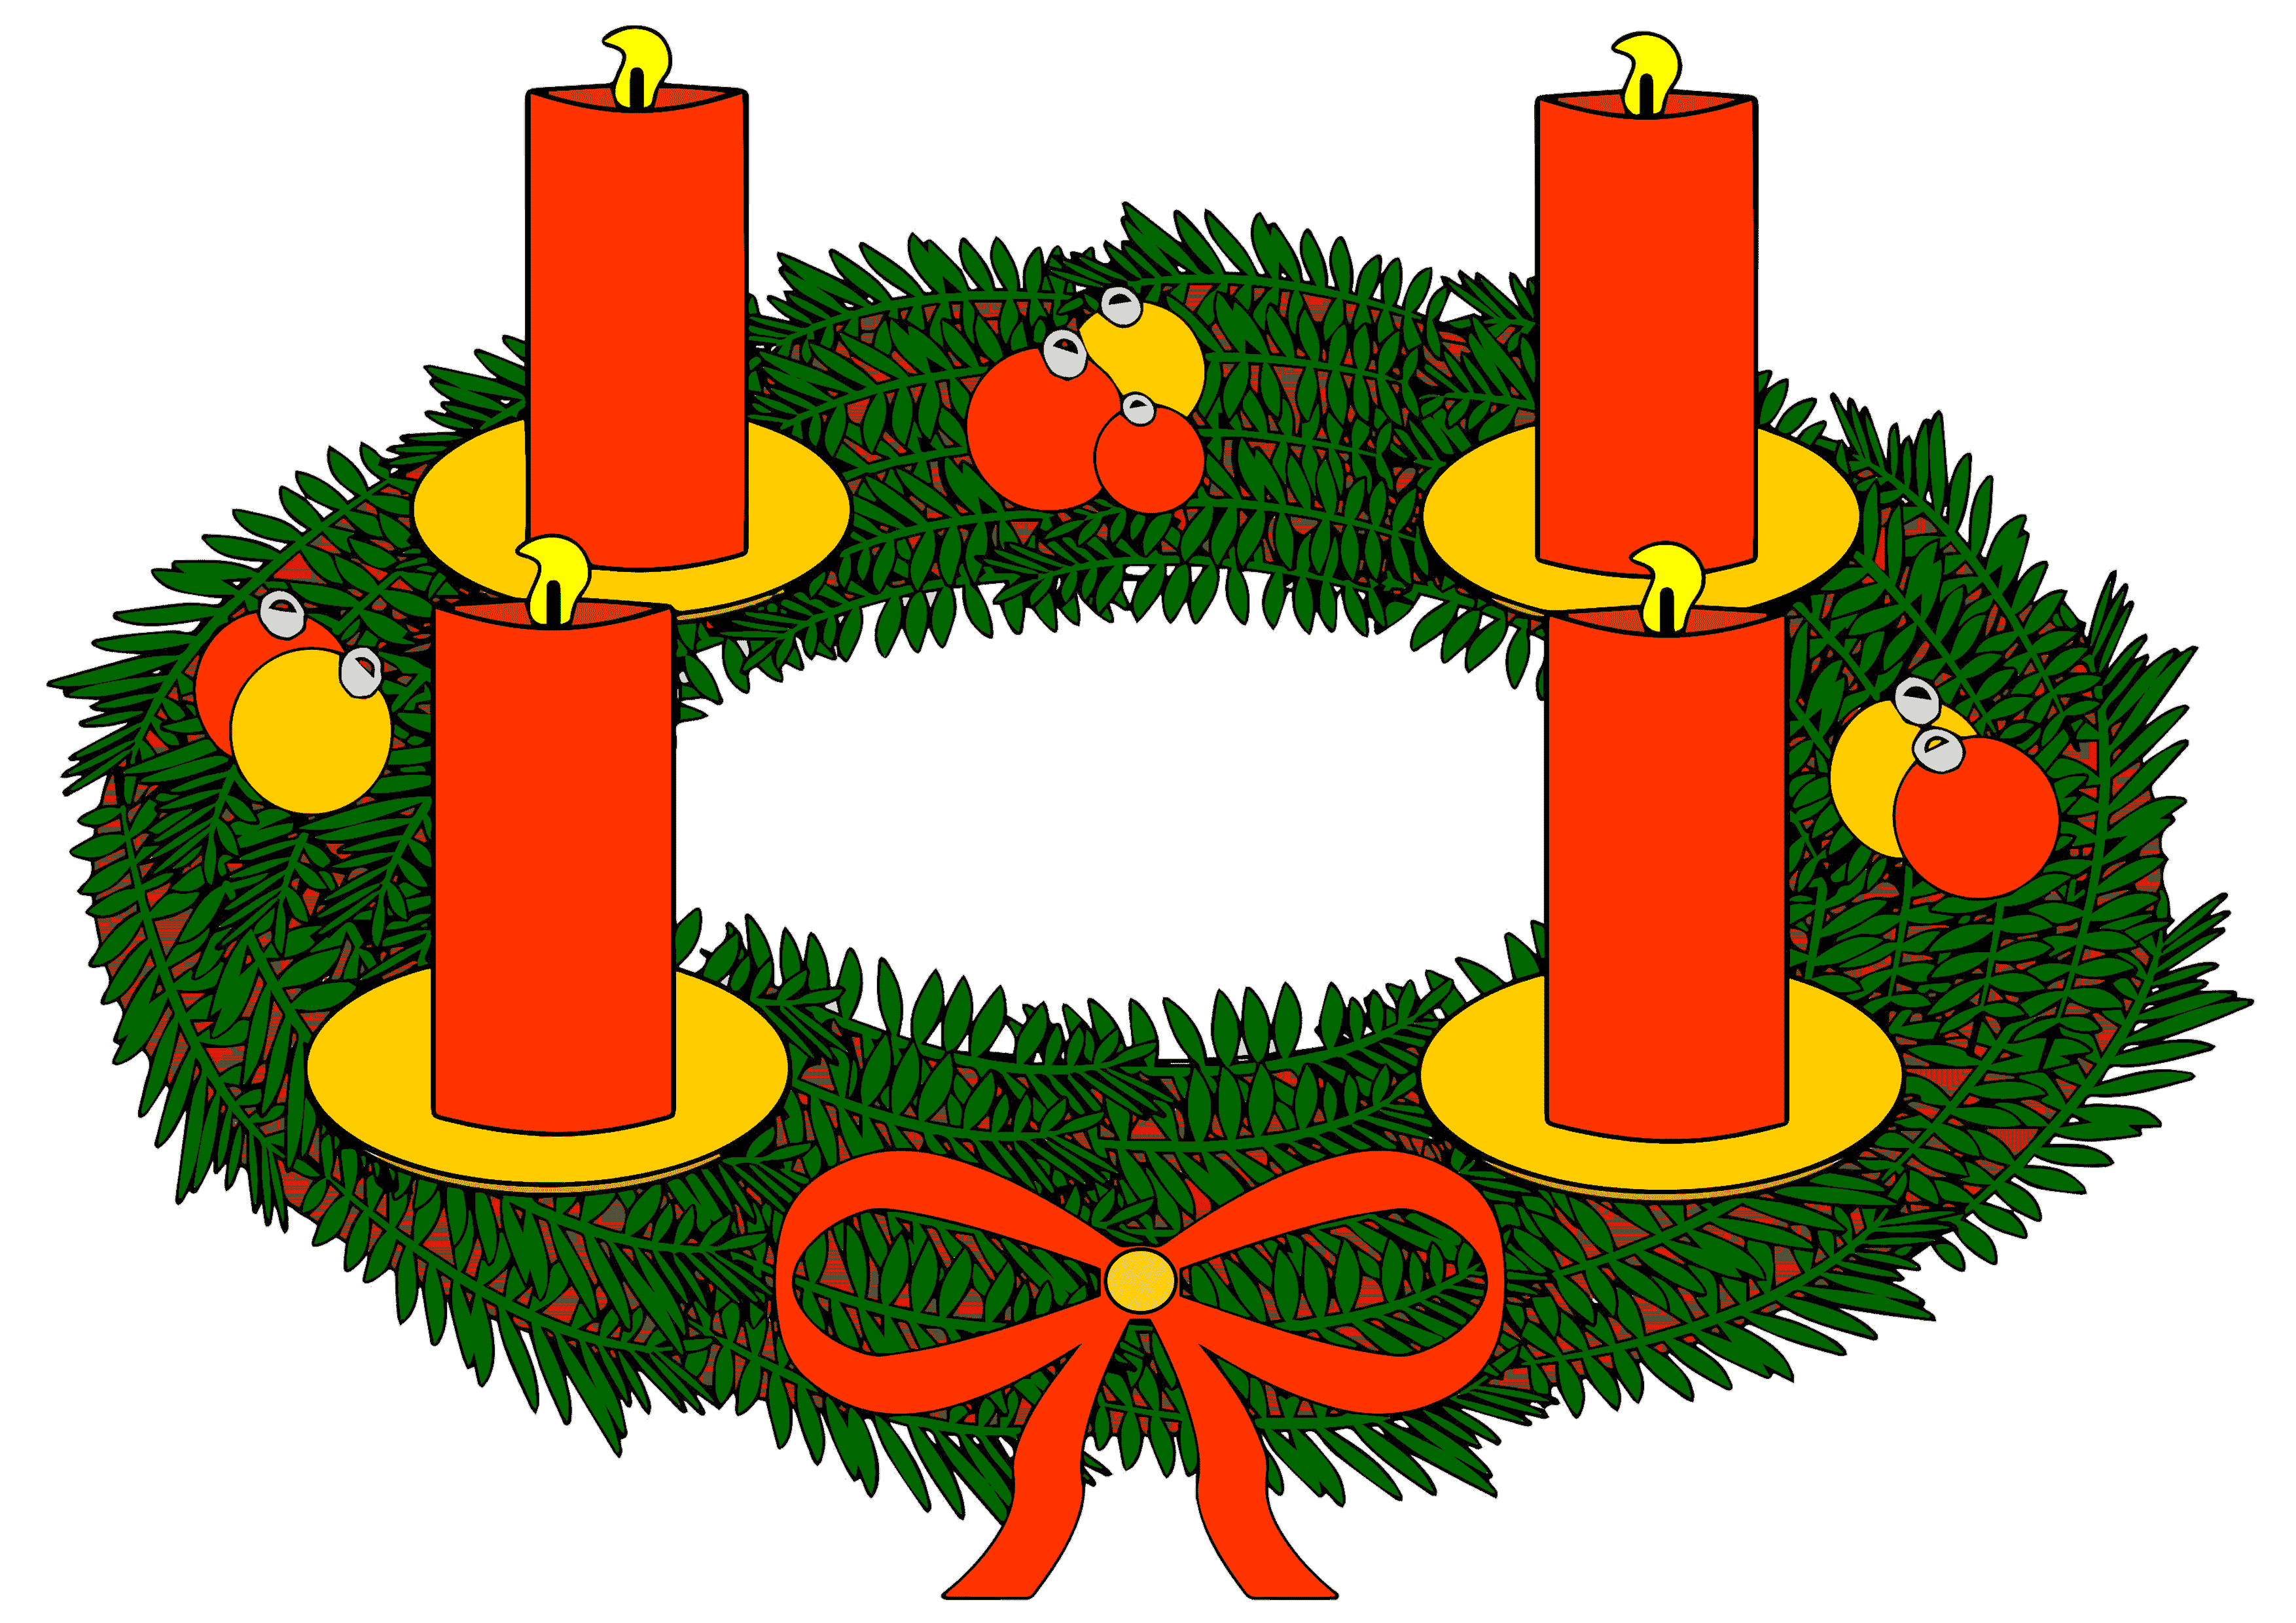 royalty free download Advent clipart.  collection of adventskranz.